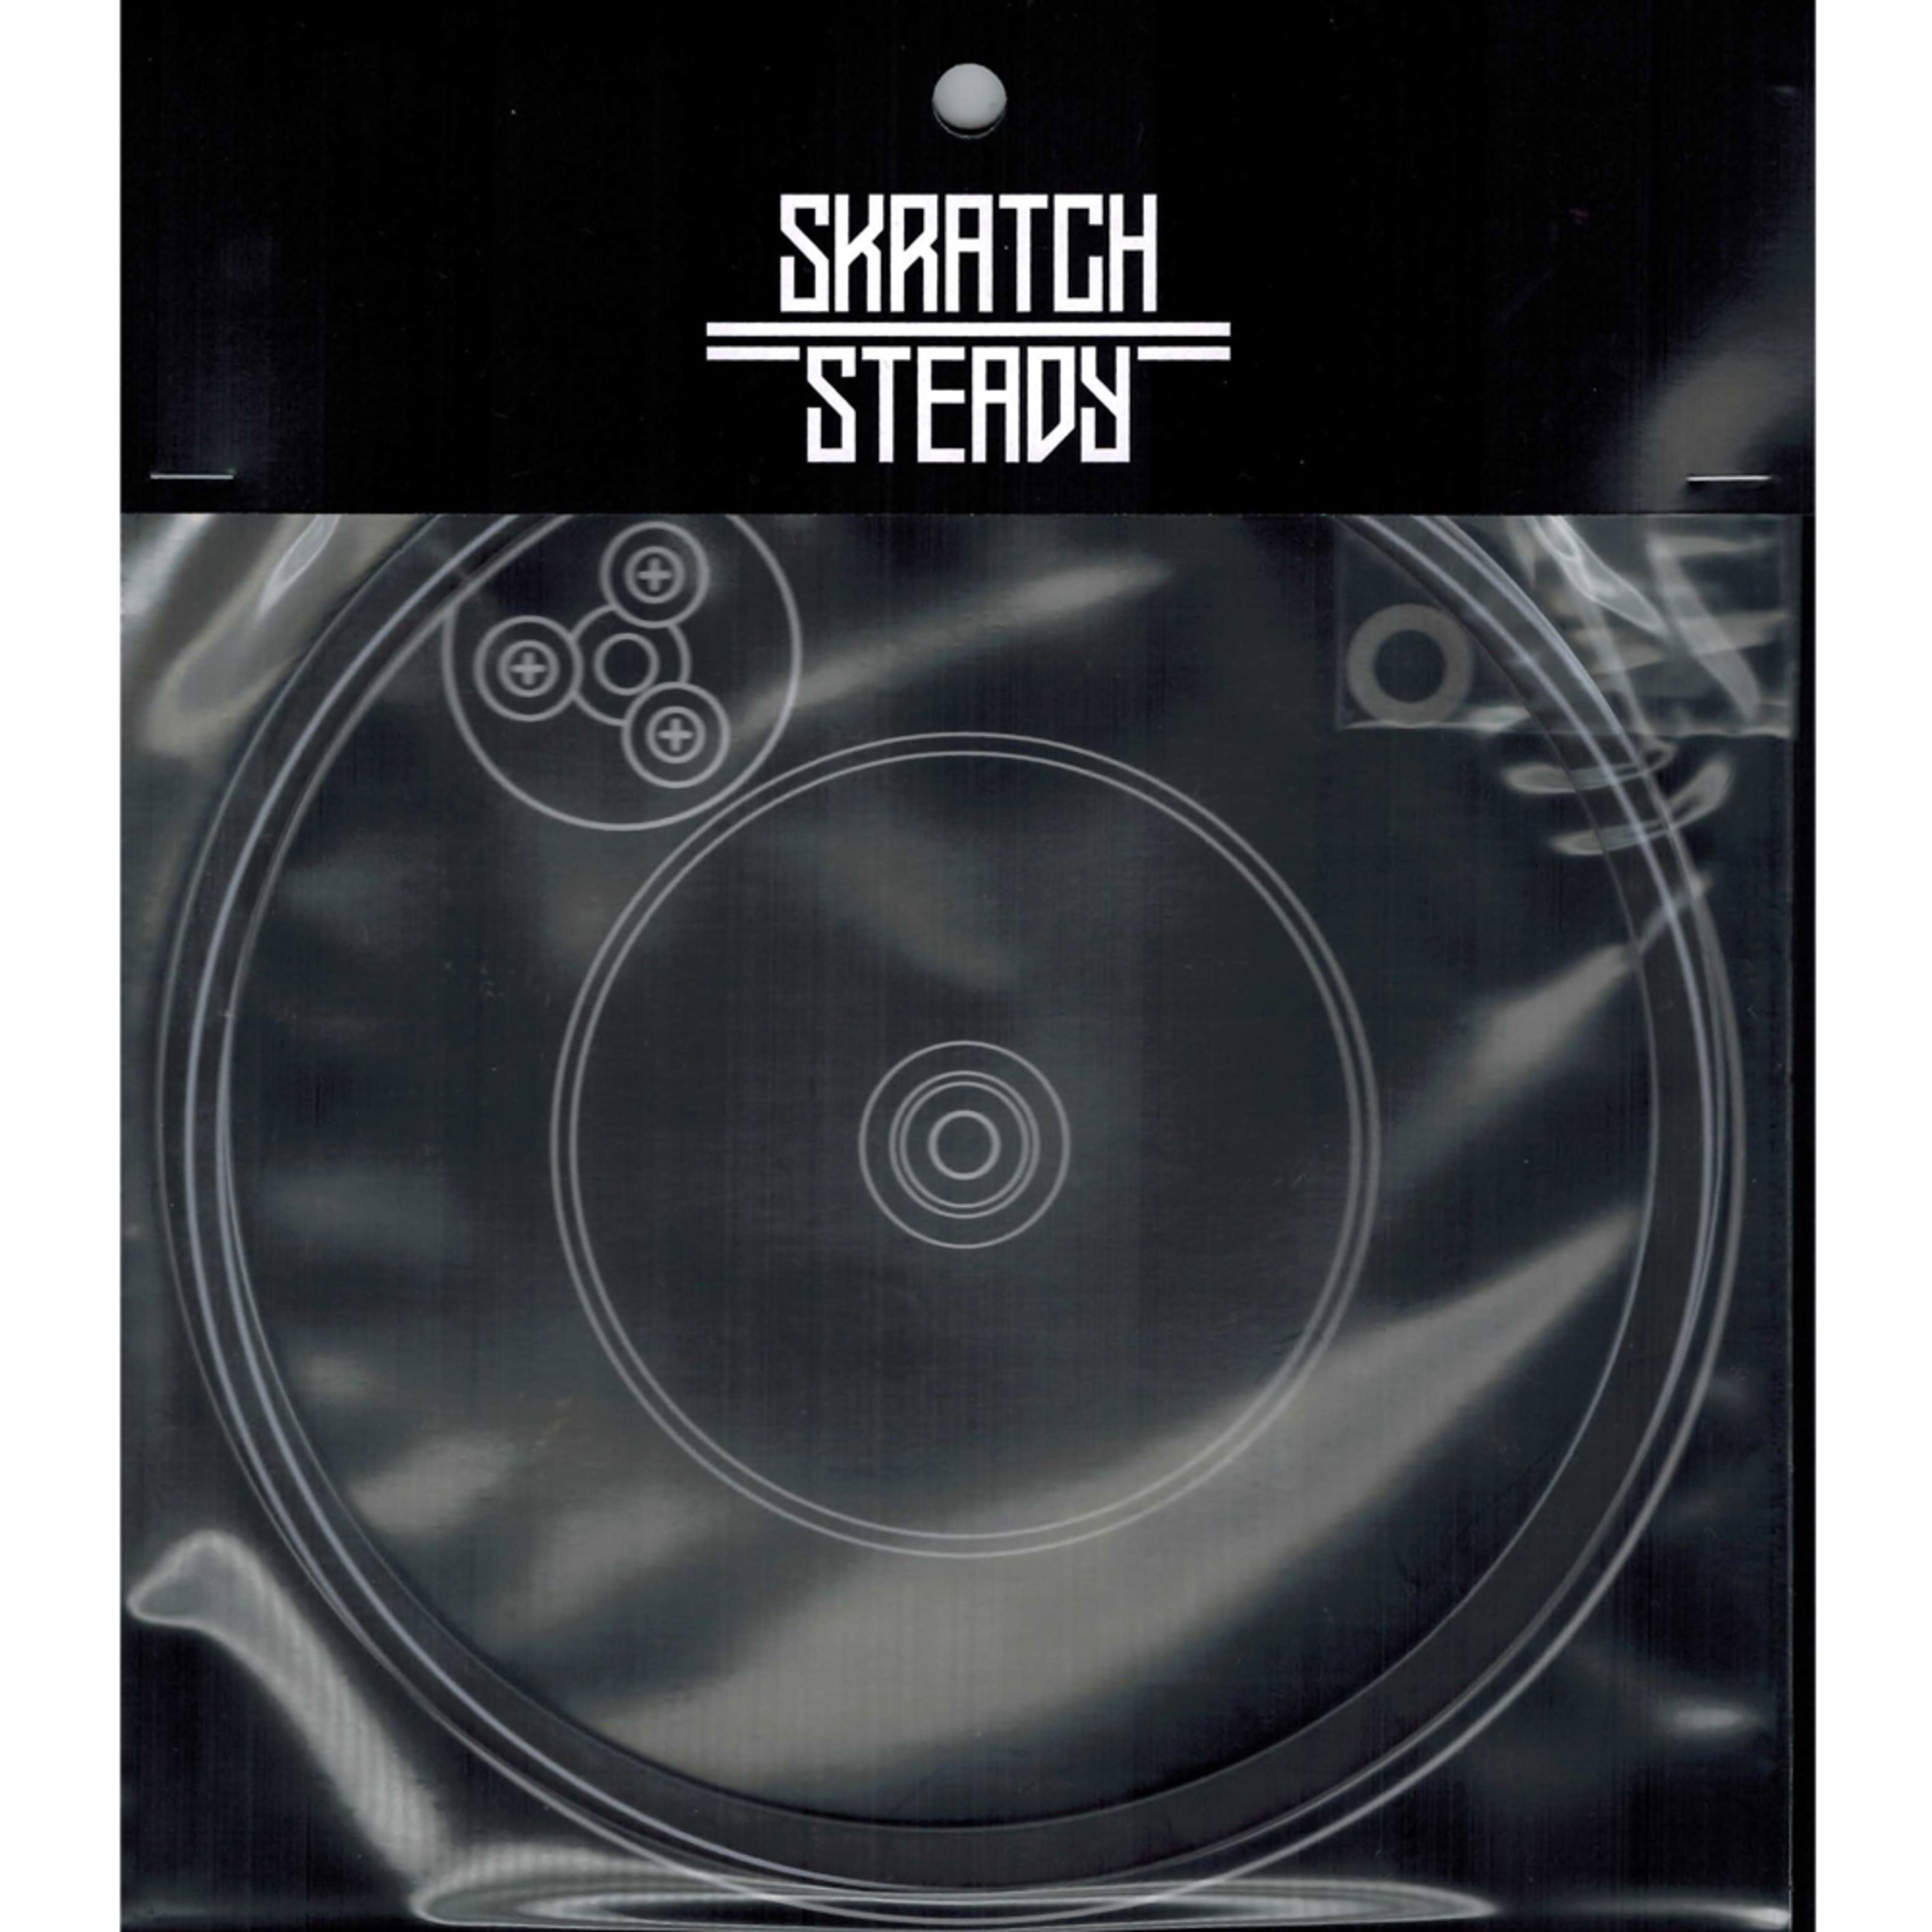 Stokyo - Skratch Steady